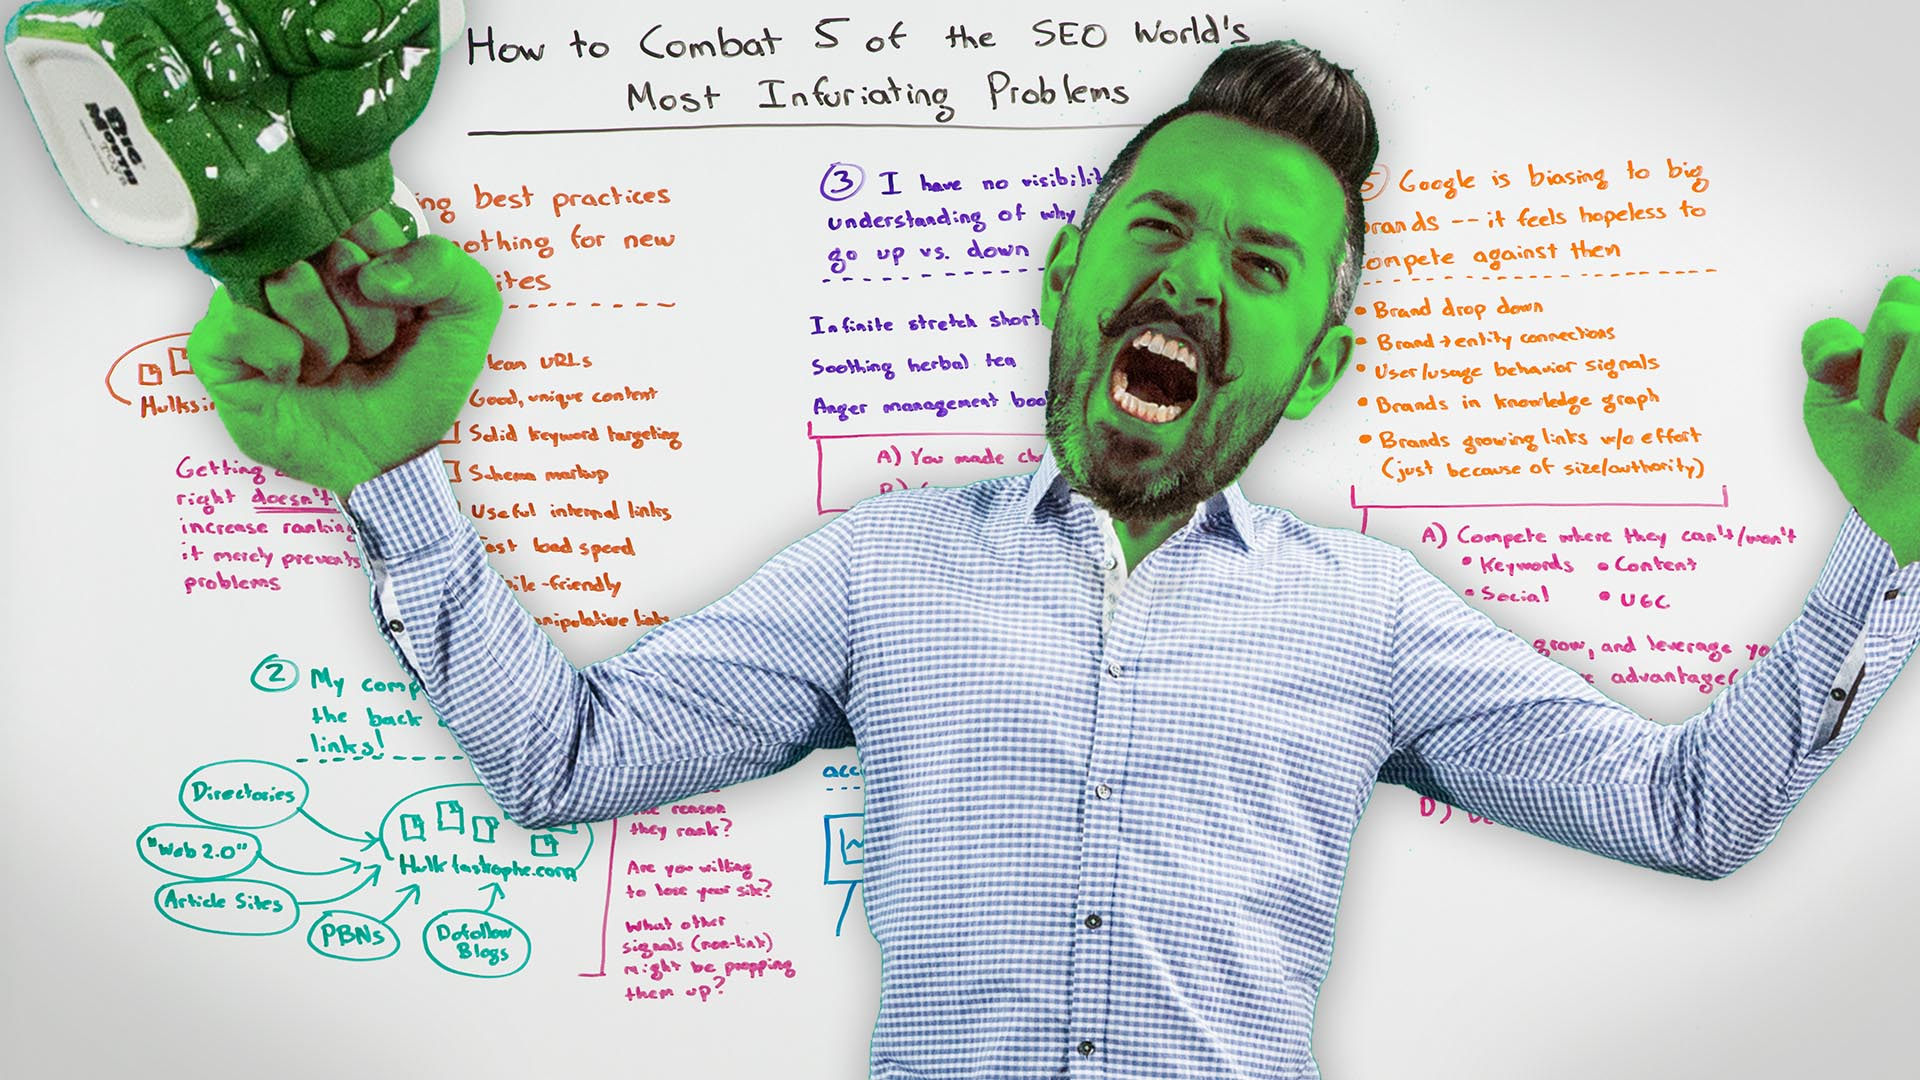 Five of the SEO World's Most Infuriating Problems